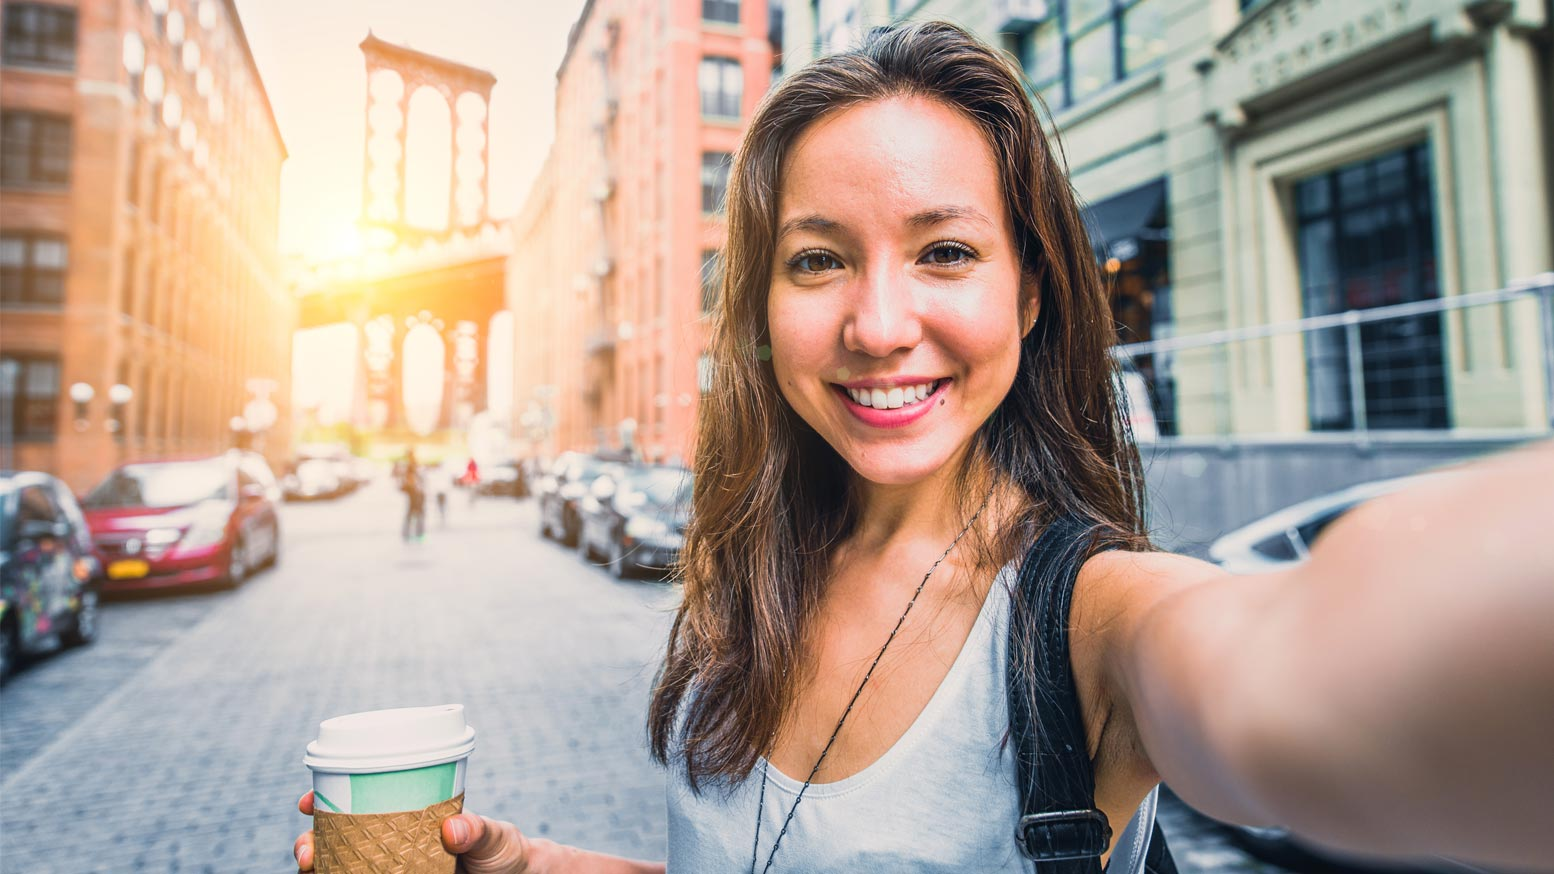 Woman having a selfie with a coffee cup